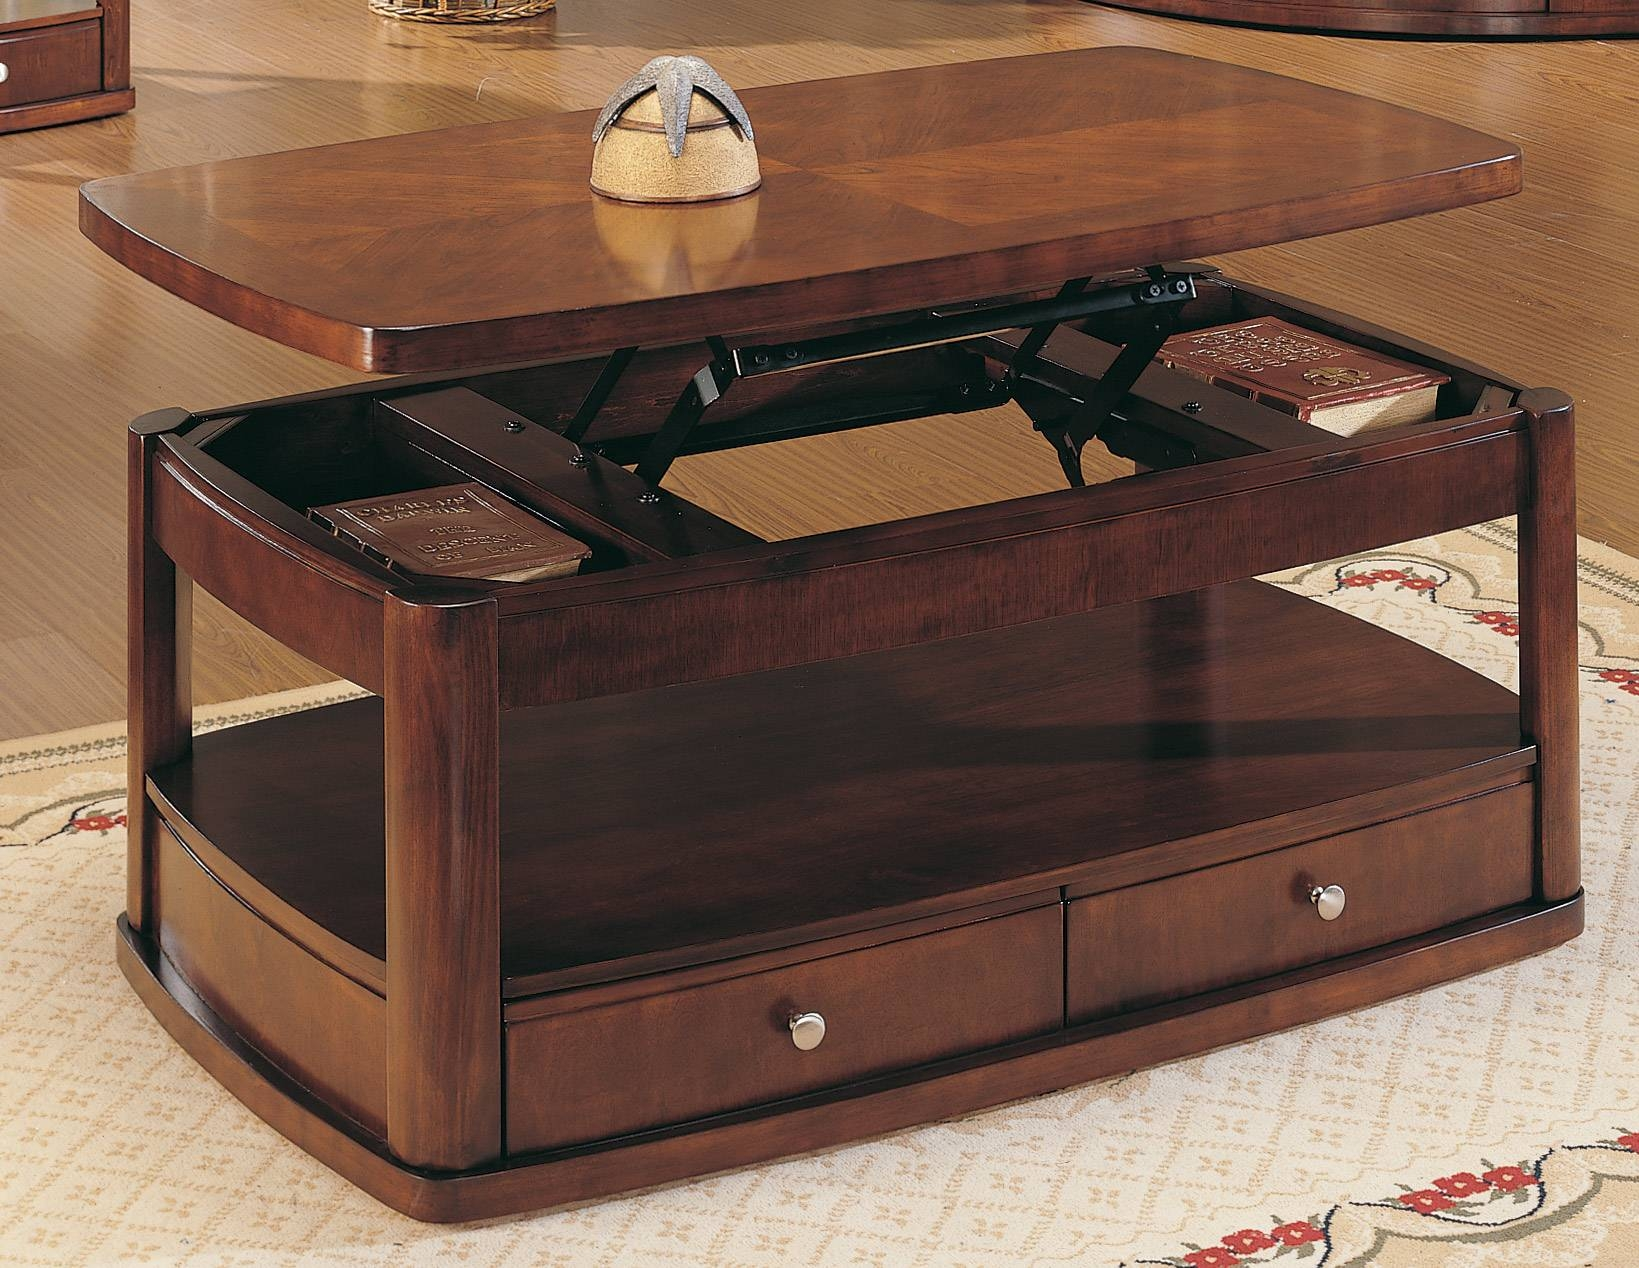 Lift Top Coffee Table Plans Awesome On Ottoman Coffee Table And with Cheap Lift Top Coffee Tables (Image 10 of 30)